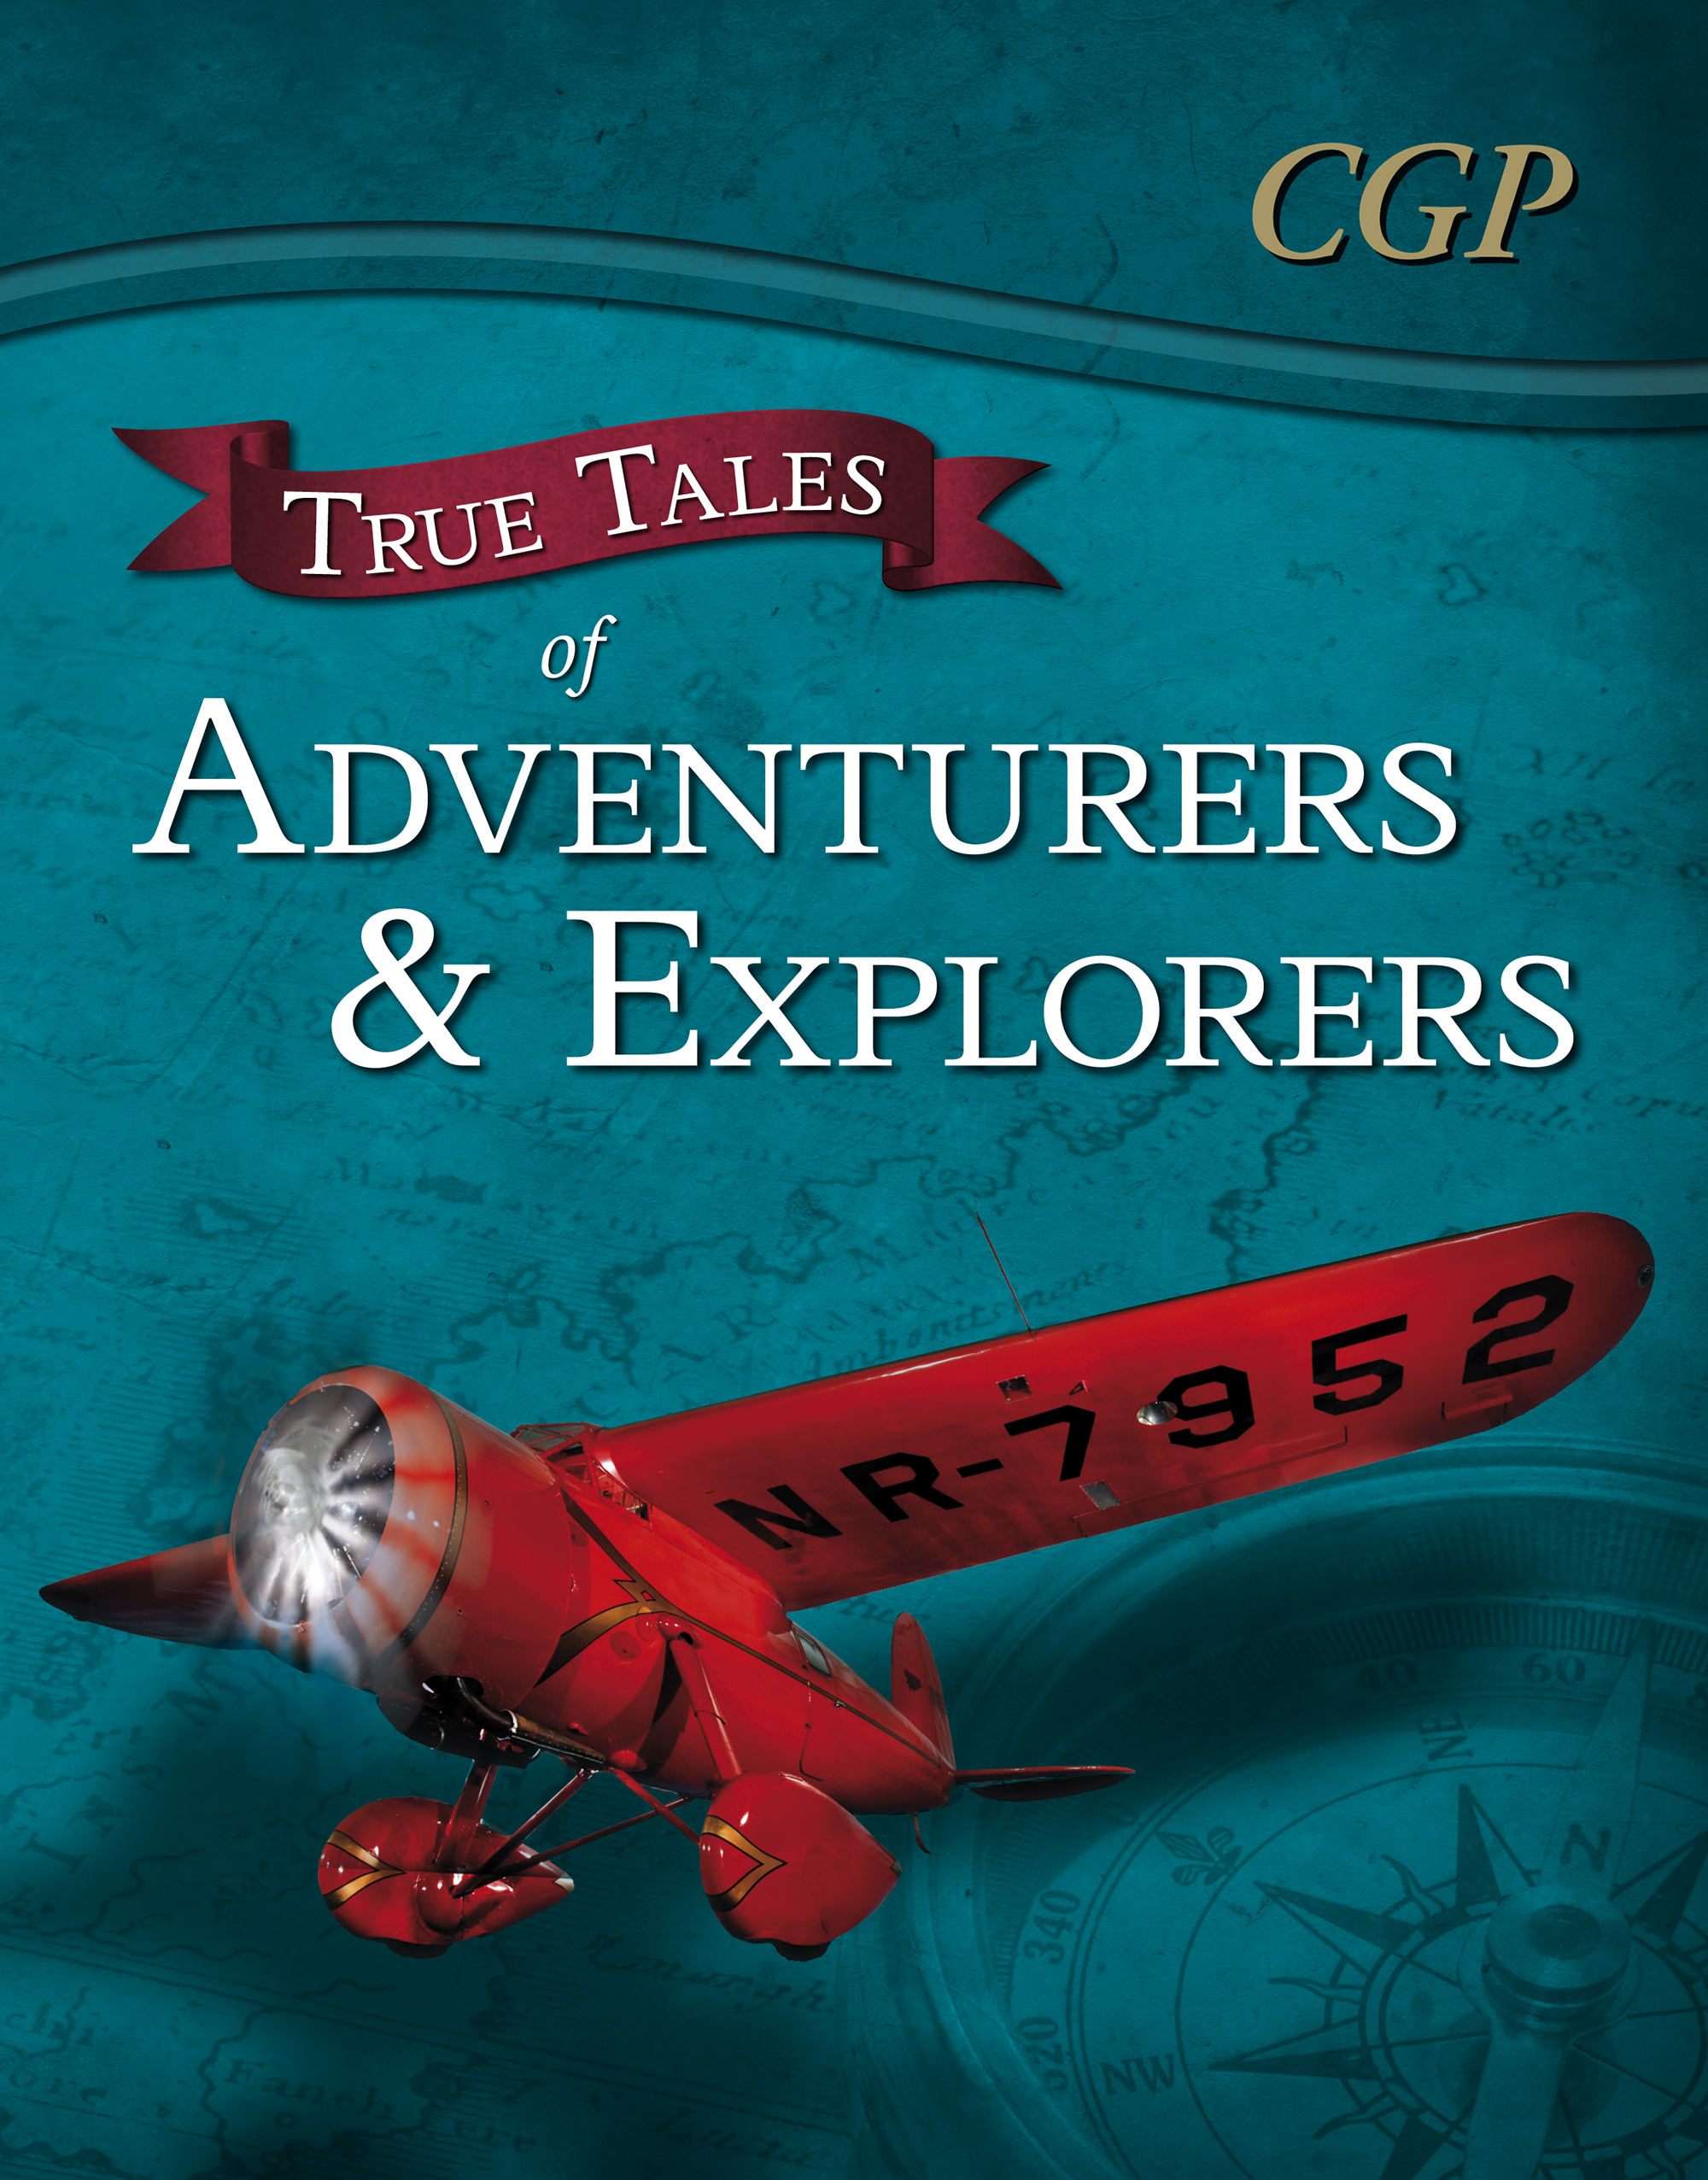 AAR21 - True Tales of Adventurers & Explorers — Reading Book: Zhang Qian, Livingstone, Bly & Earhart